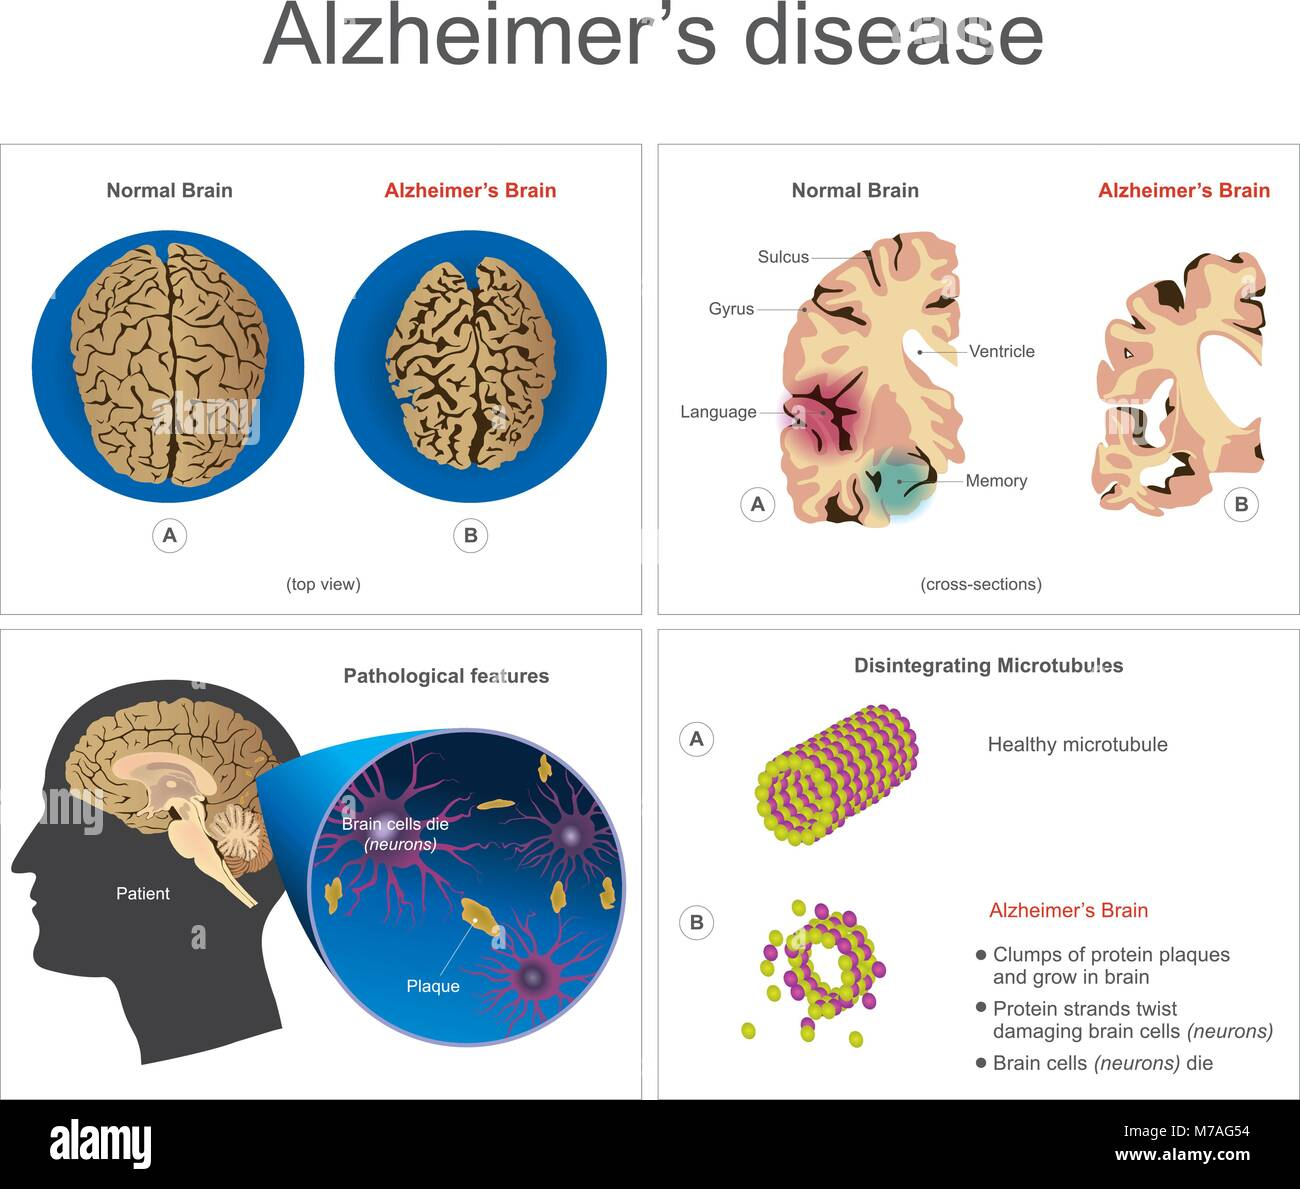 Brain cells die, neuron diseased, certain areas of brain shrink memory loss or changes in memory for people age - Stock Vector